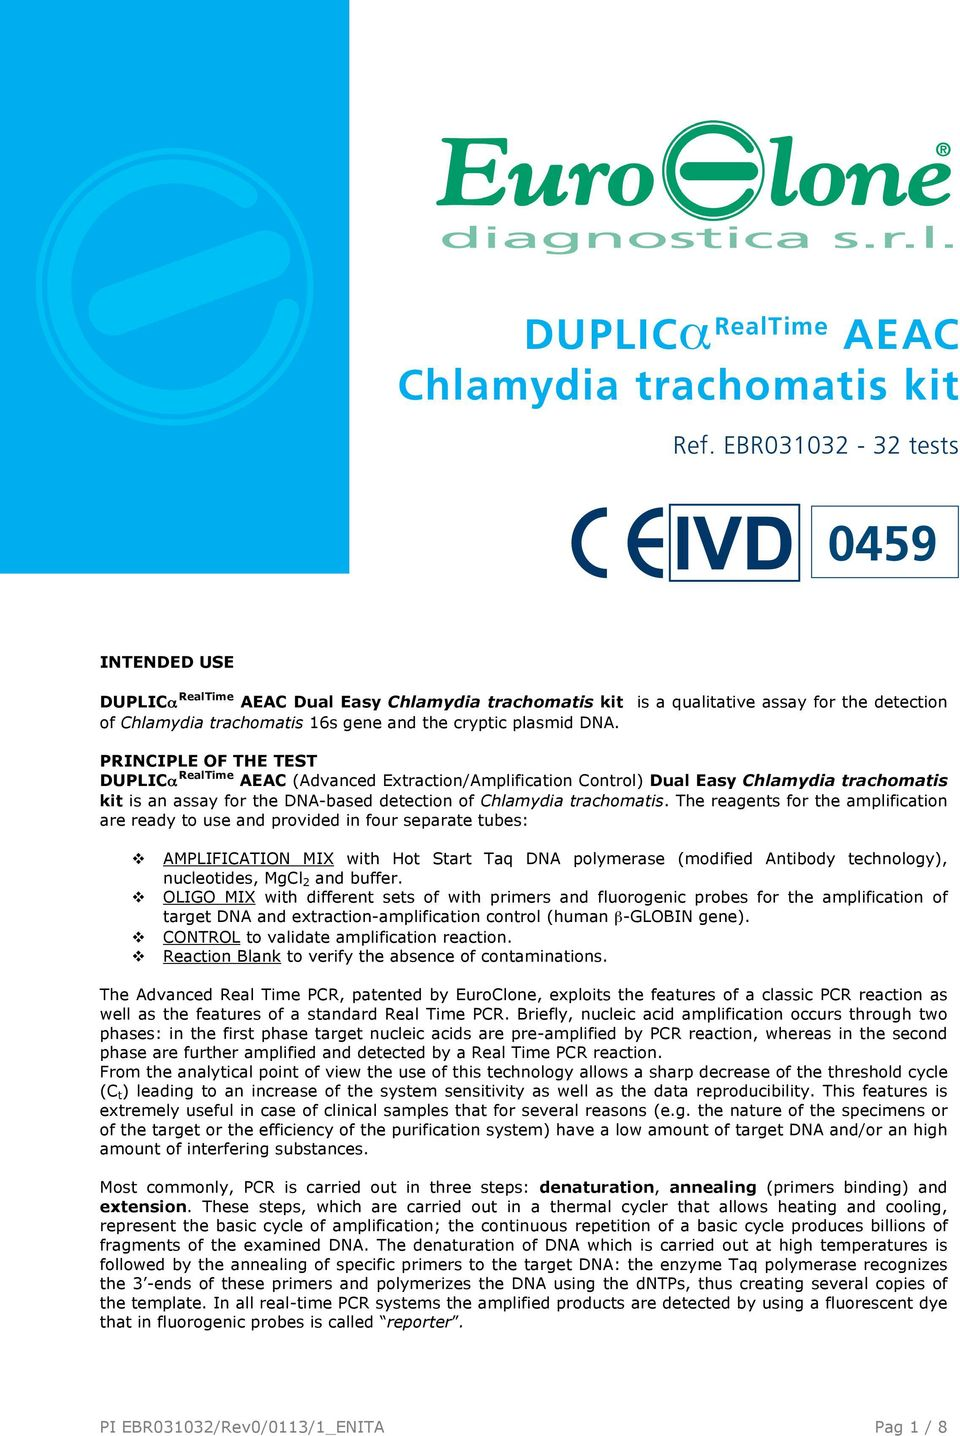 PRINCIPLE OF THE TEST DUPLICα RealTime AEAC (Advanced Extraction/Amplification Control) Dual Easy Chlamydia trachomatis kit is an assay for the DNA-based detection of Chlamydia trachomatis.